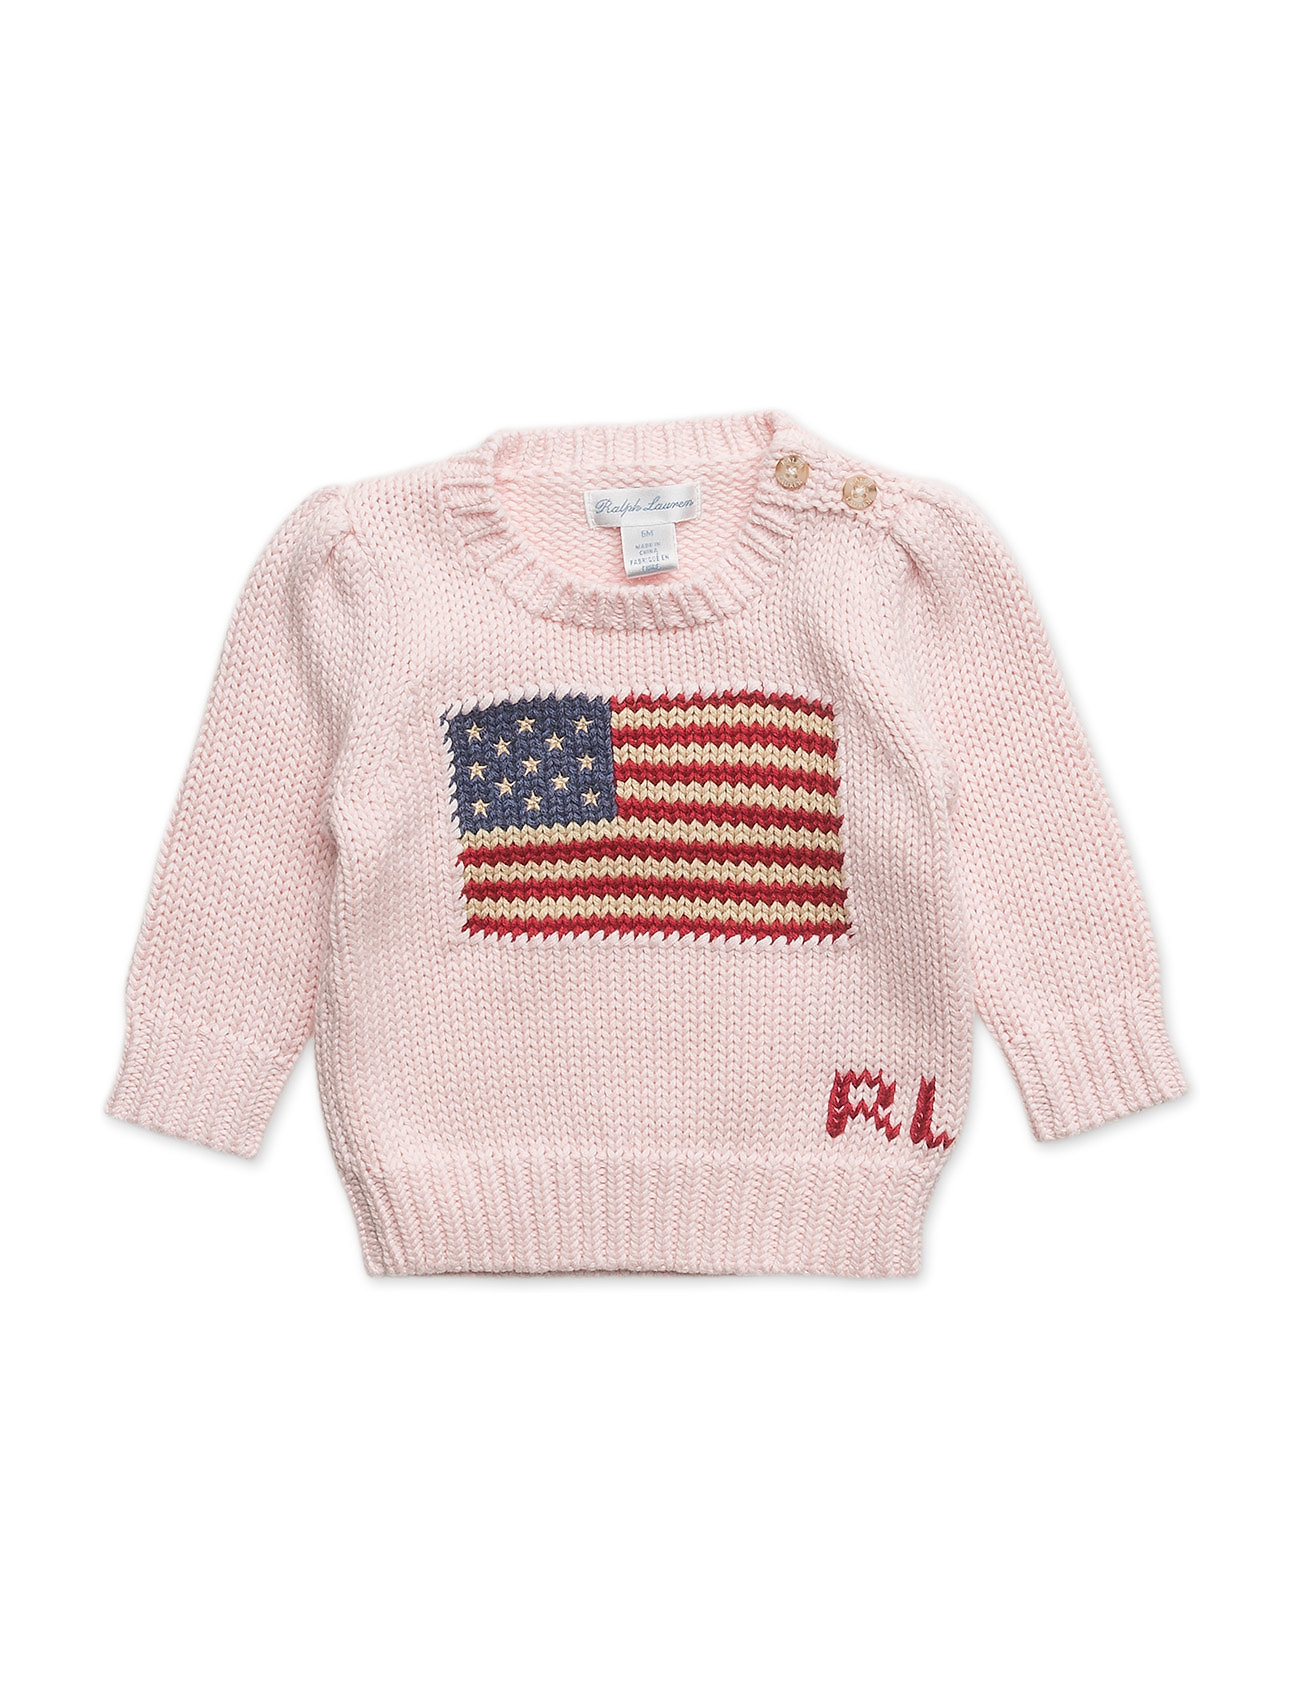 2b403069ce70a American Flag Sweater (French Pink) (99 €) - Ralph Lauren Baby ...